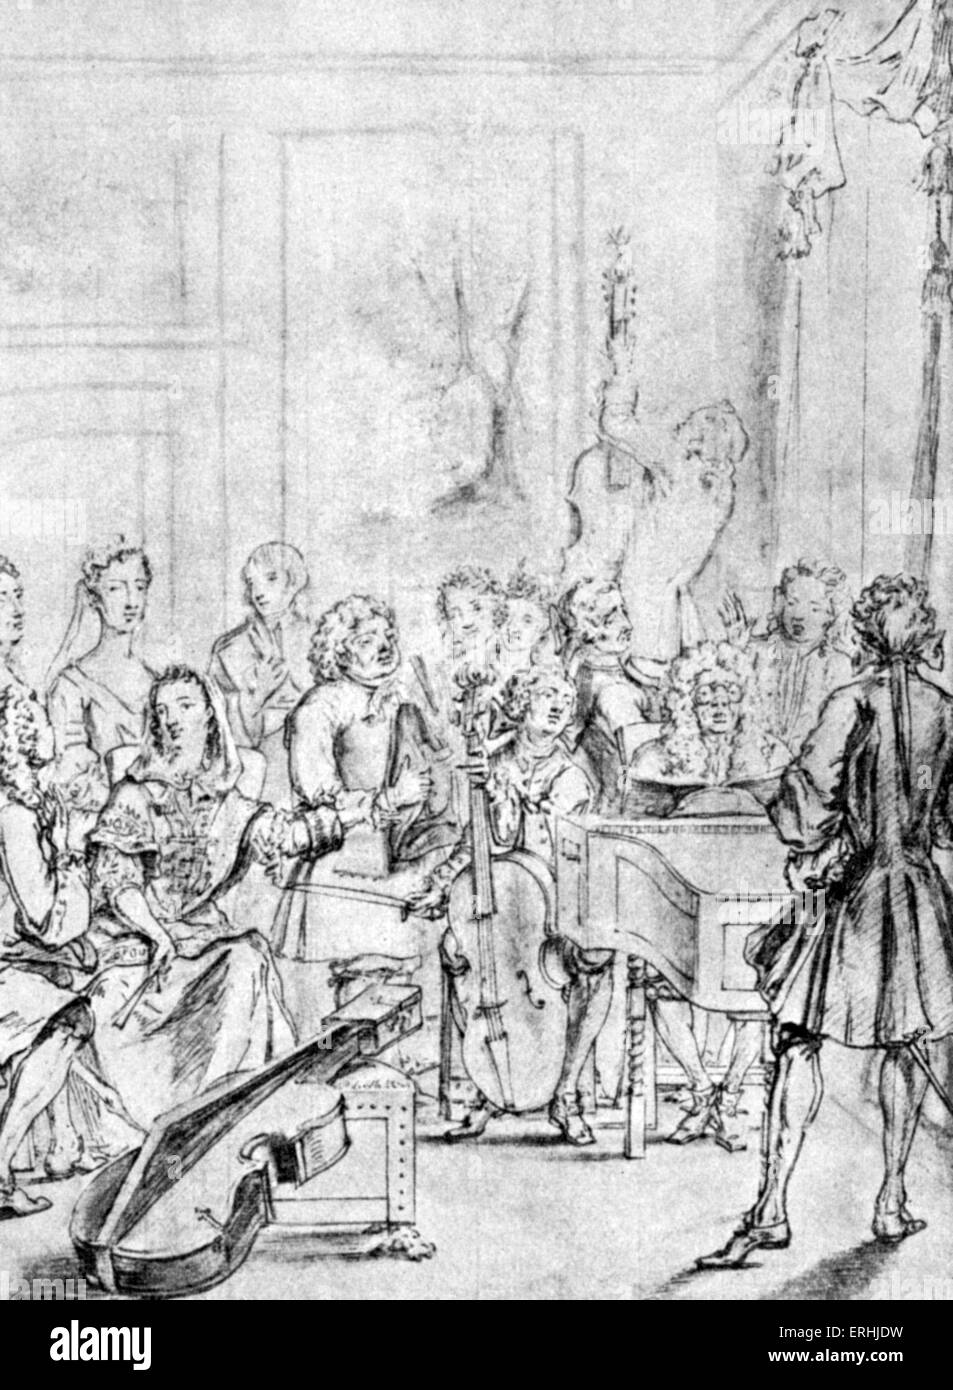 Music recital in the home of a nobleman. Drawing by Marcellus Lason, 1736. - Stock Image